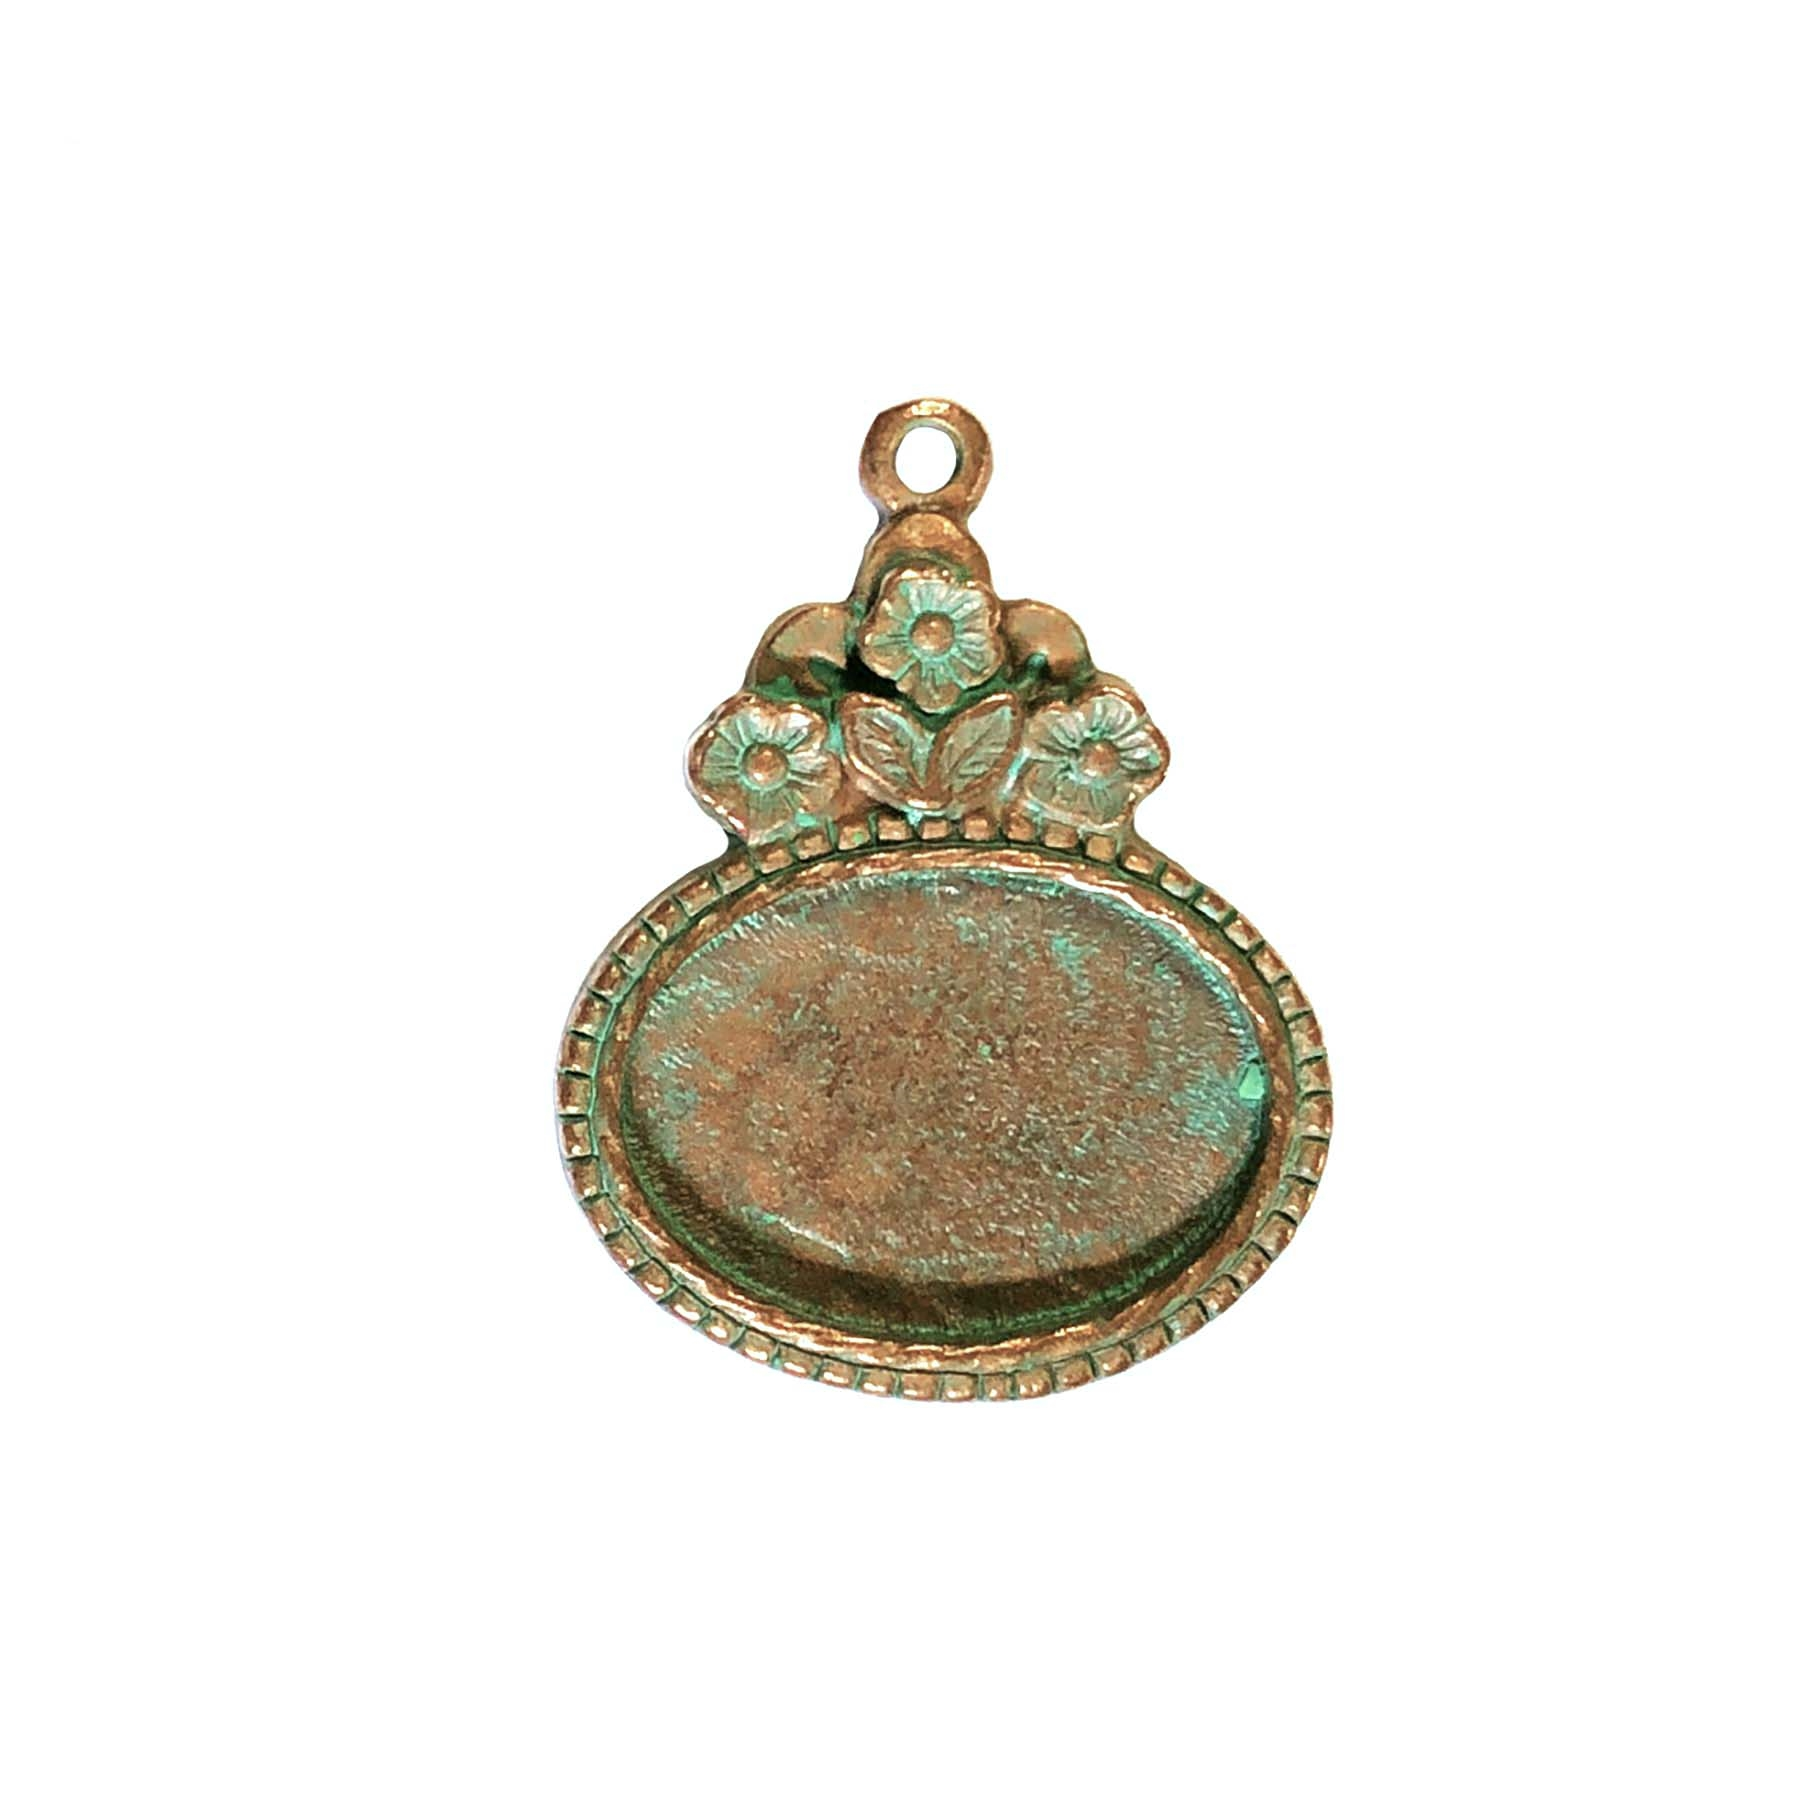 floral pendant mount, B'sue by 1928, floral mount, cameo mount, stone mount, weathered copper pewter, copper base, mount, vintage, nickel free, lead free pewter, vintage castings, US made, vintage supplies, B'sue Boutiques, 18x13mm mount, 0658